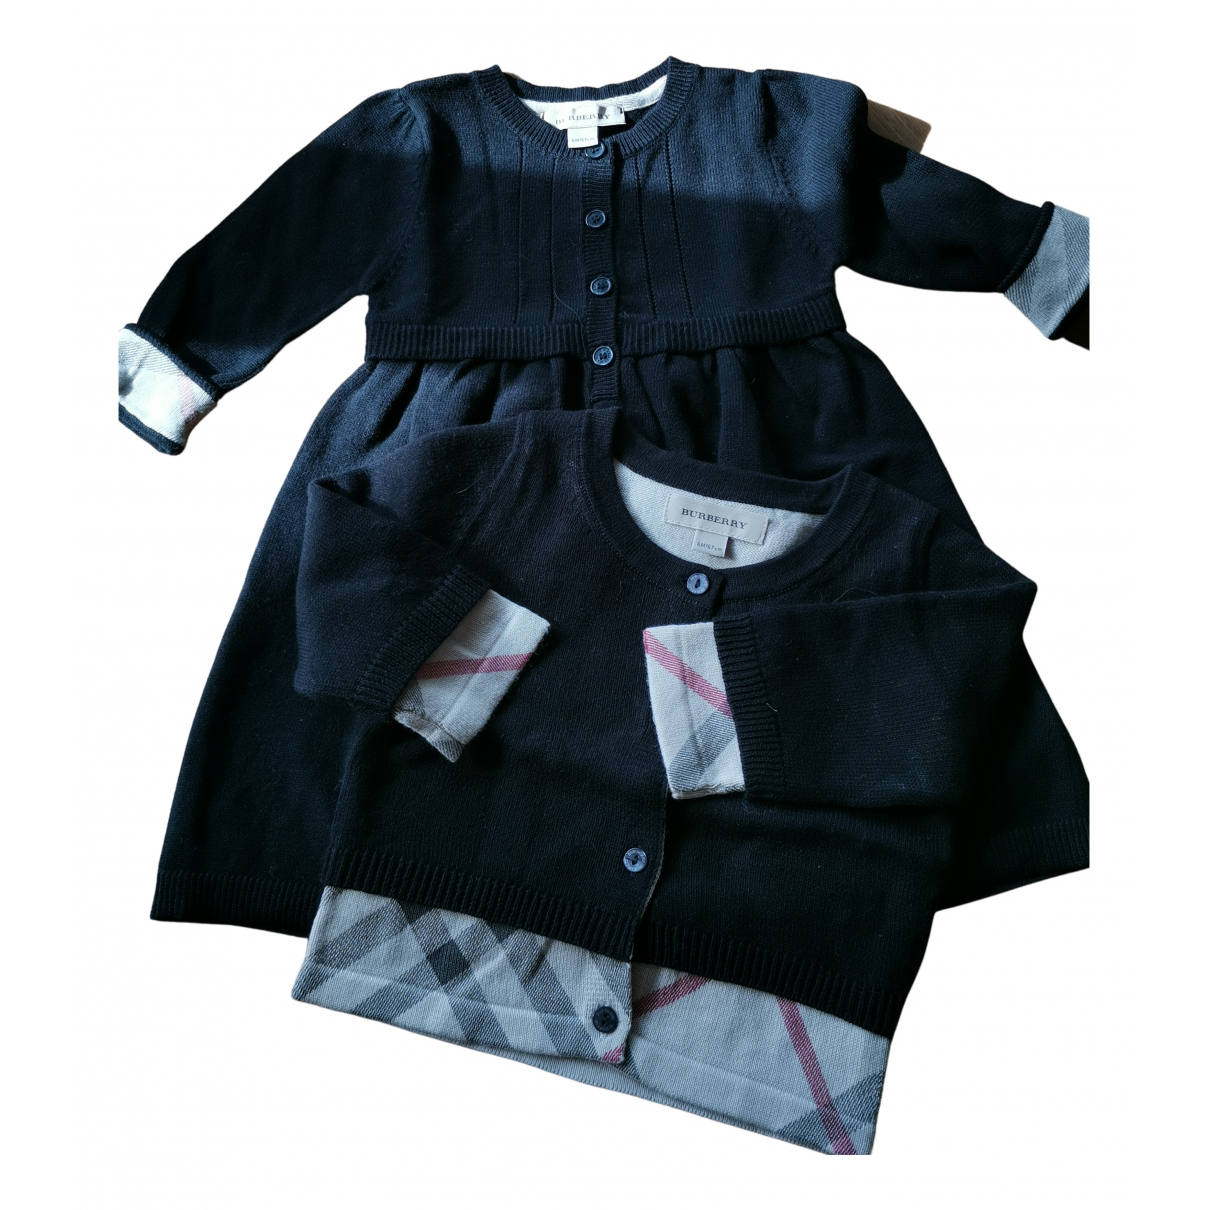 Burberry N Black Cotton Outfits for Kids 6 months - up to 67cm FR